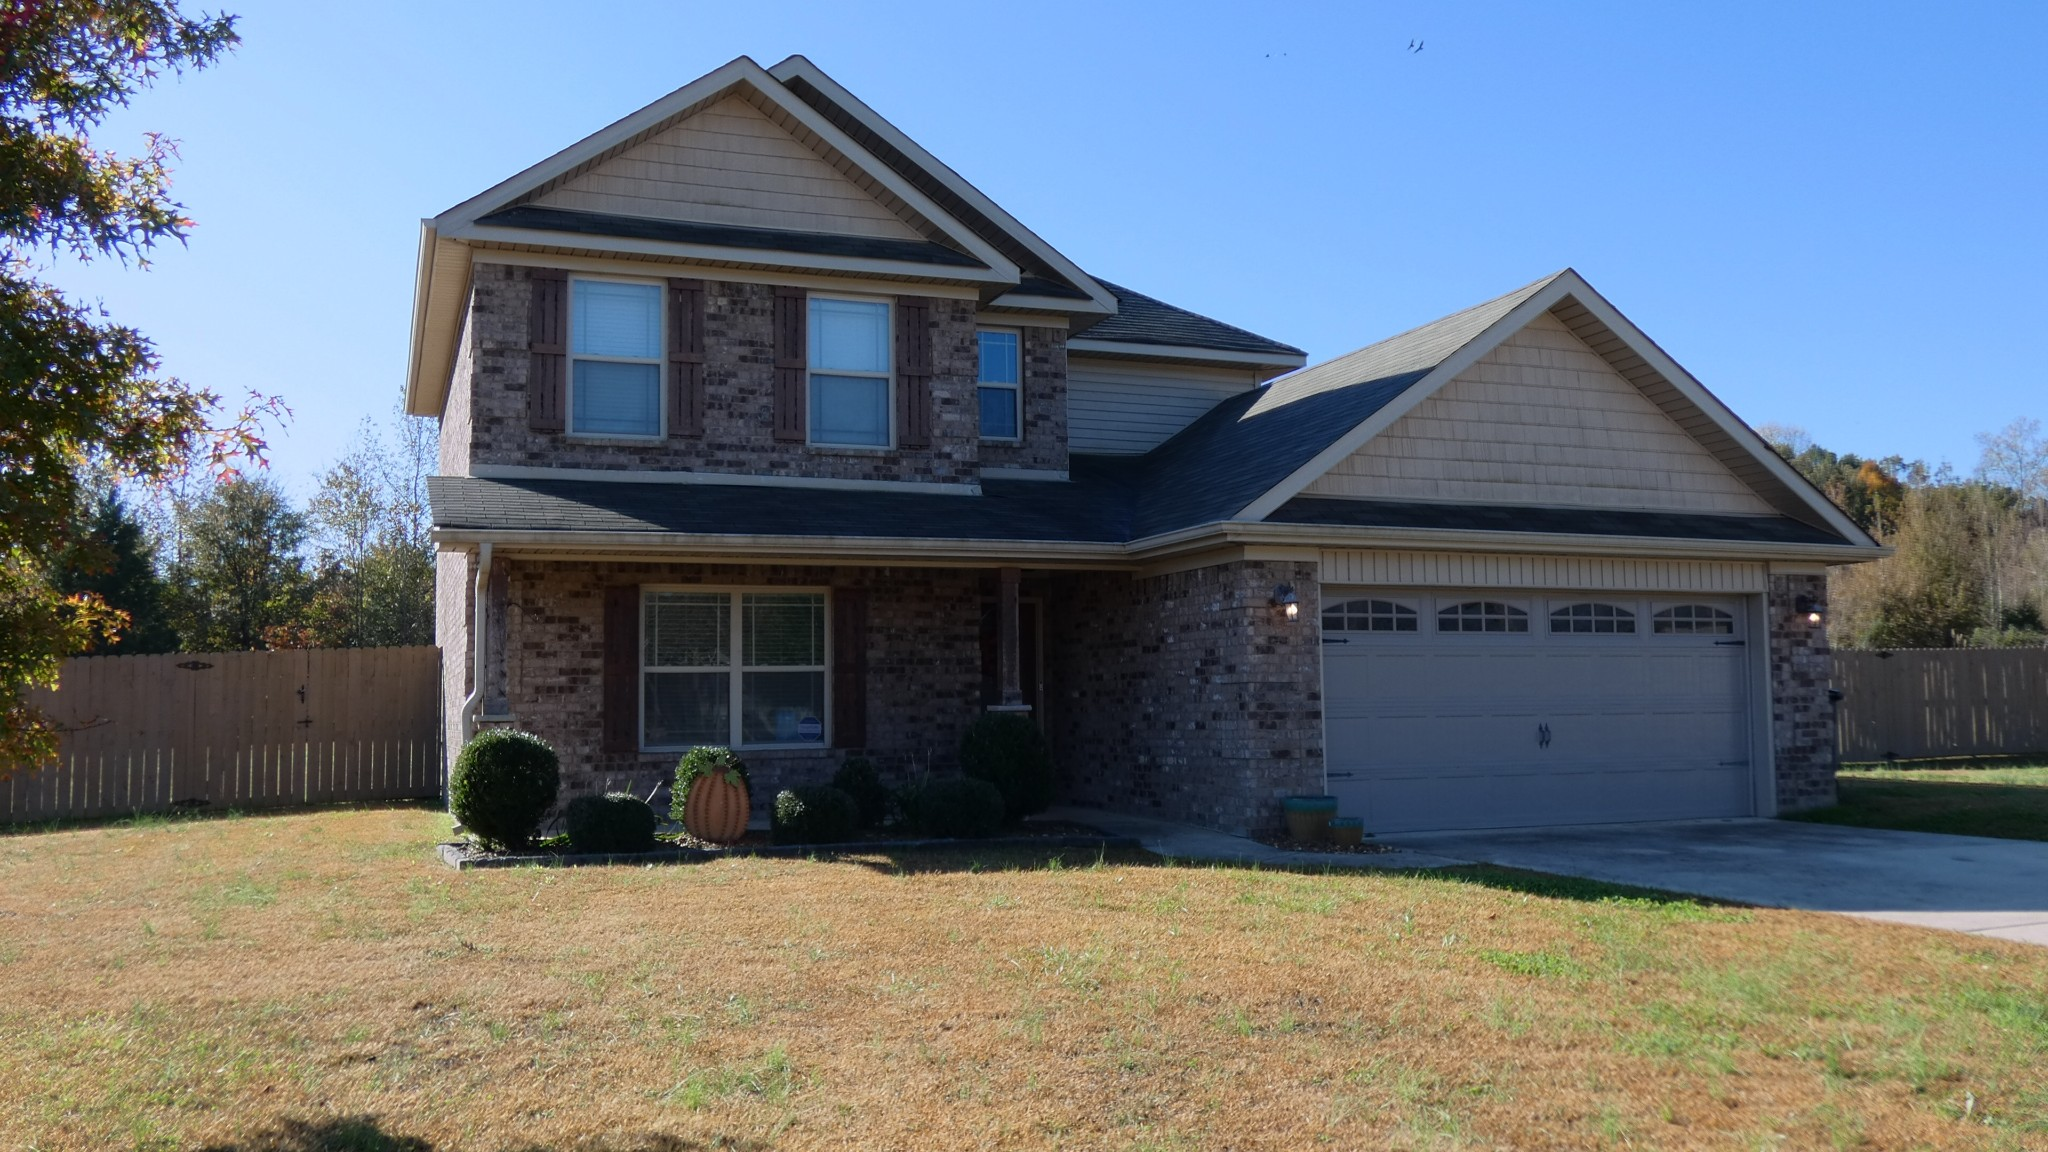 57 Sonoma Dr, Fayetteville, TN 37334 - Fayetteville, TN real estate listing